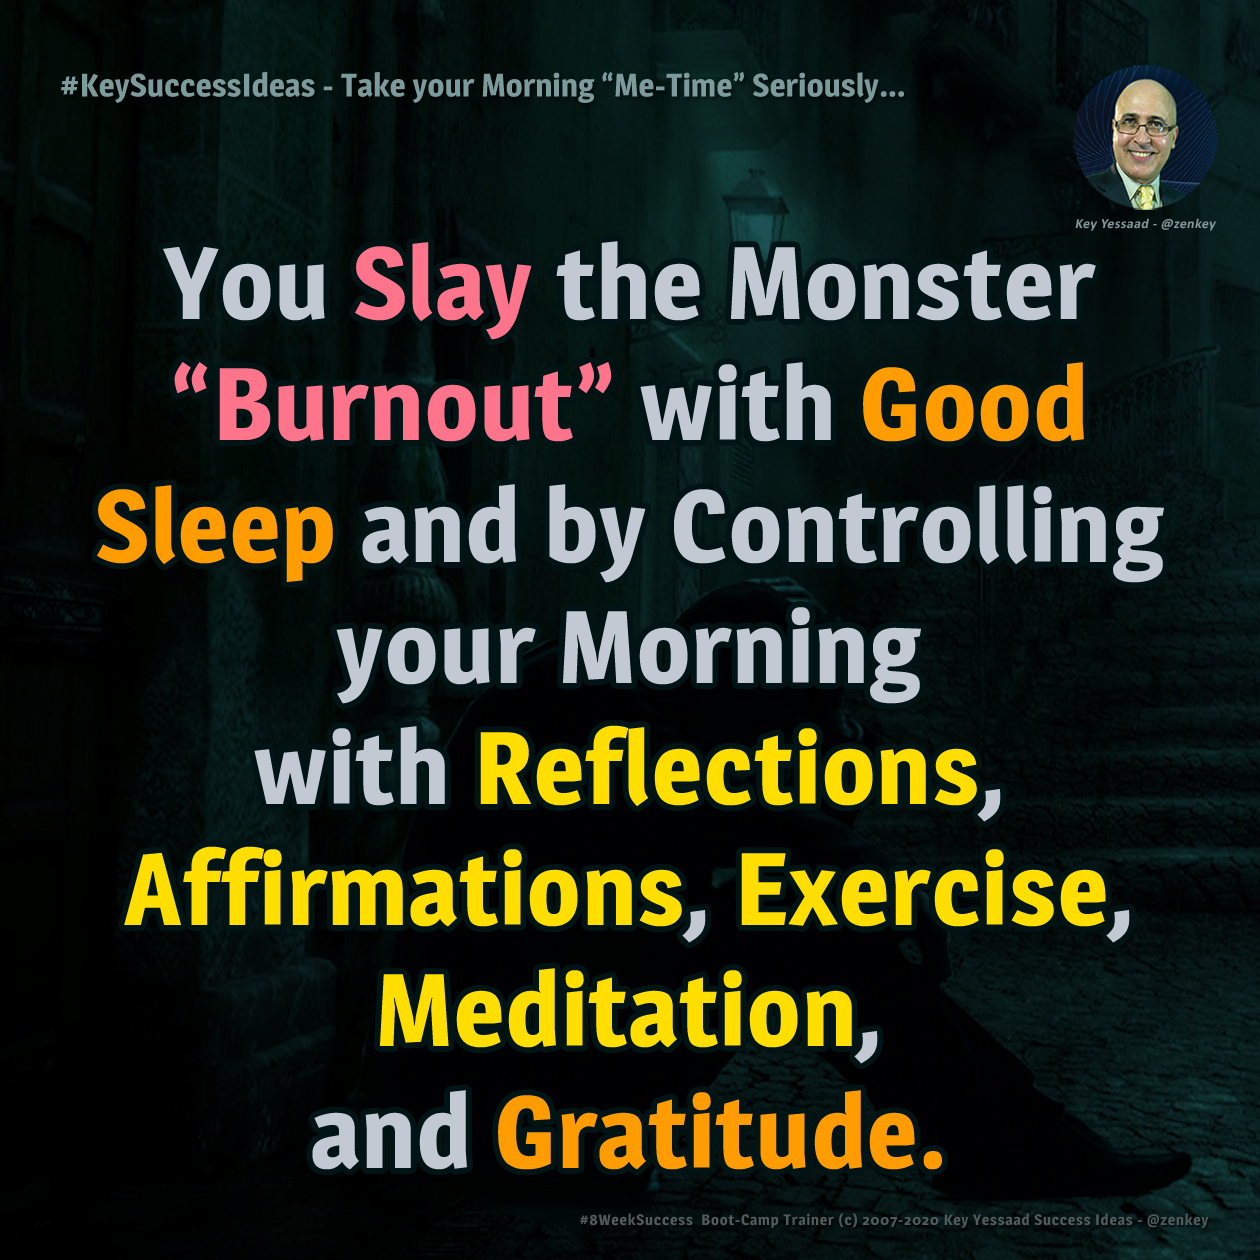 """Take your Morning """"Me-Time"""" Seriously... - #KeySuccessIdeas"""